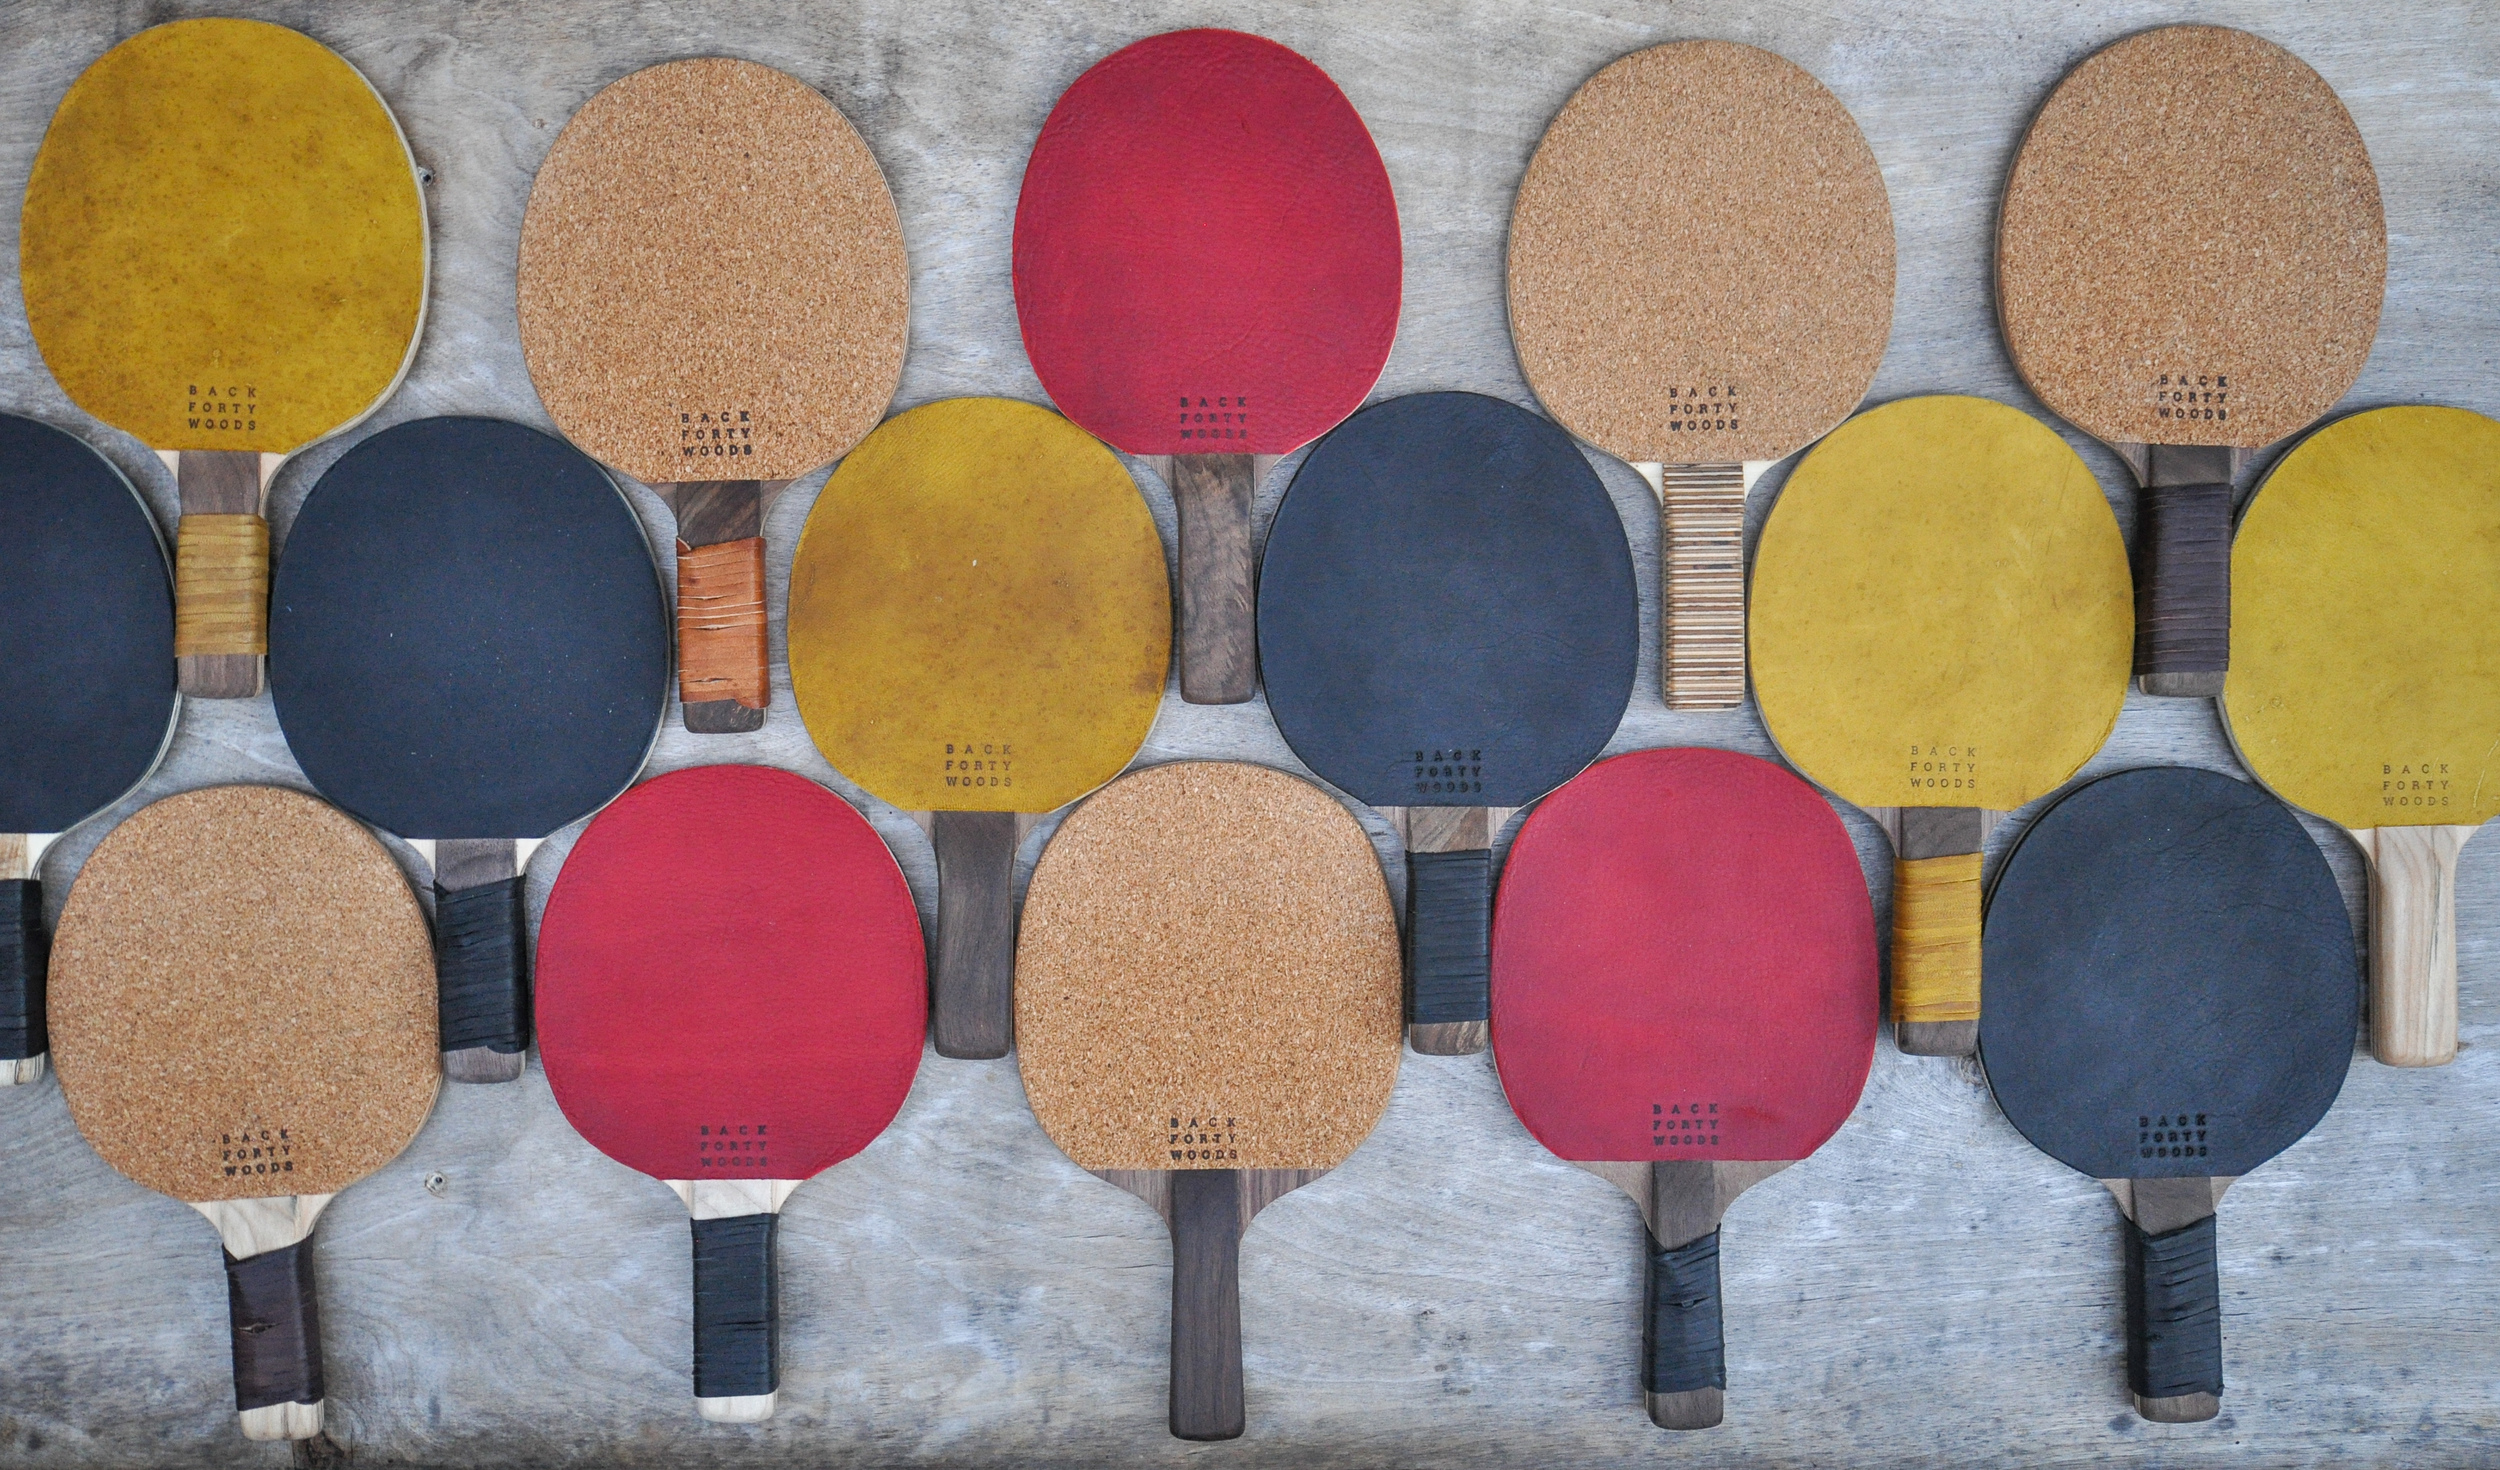 Custom Specialty Cork and Leather Table Tennis Blades